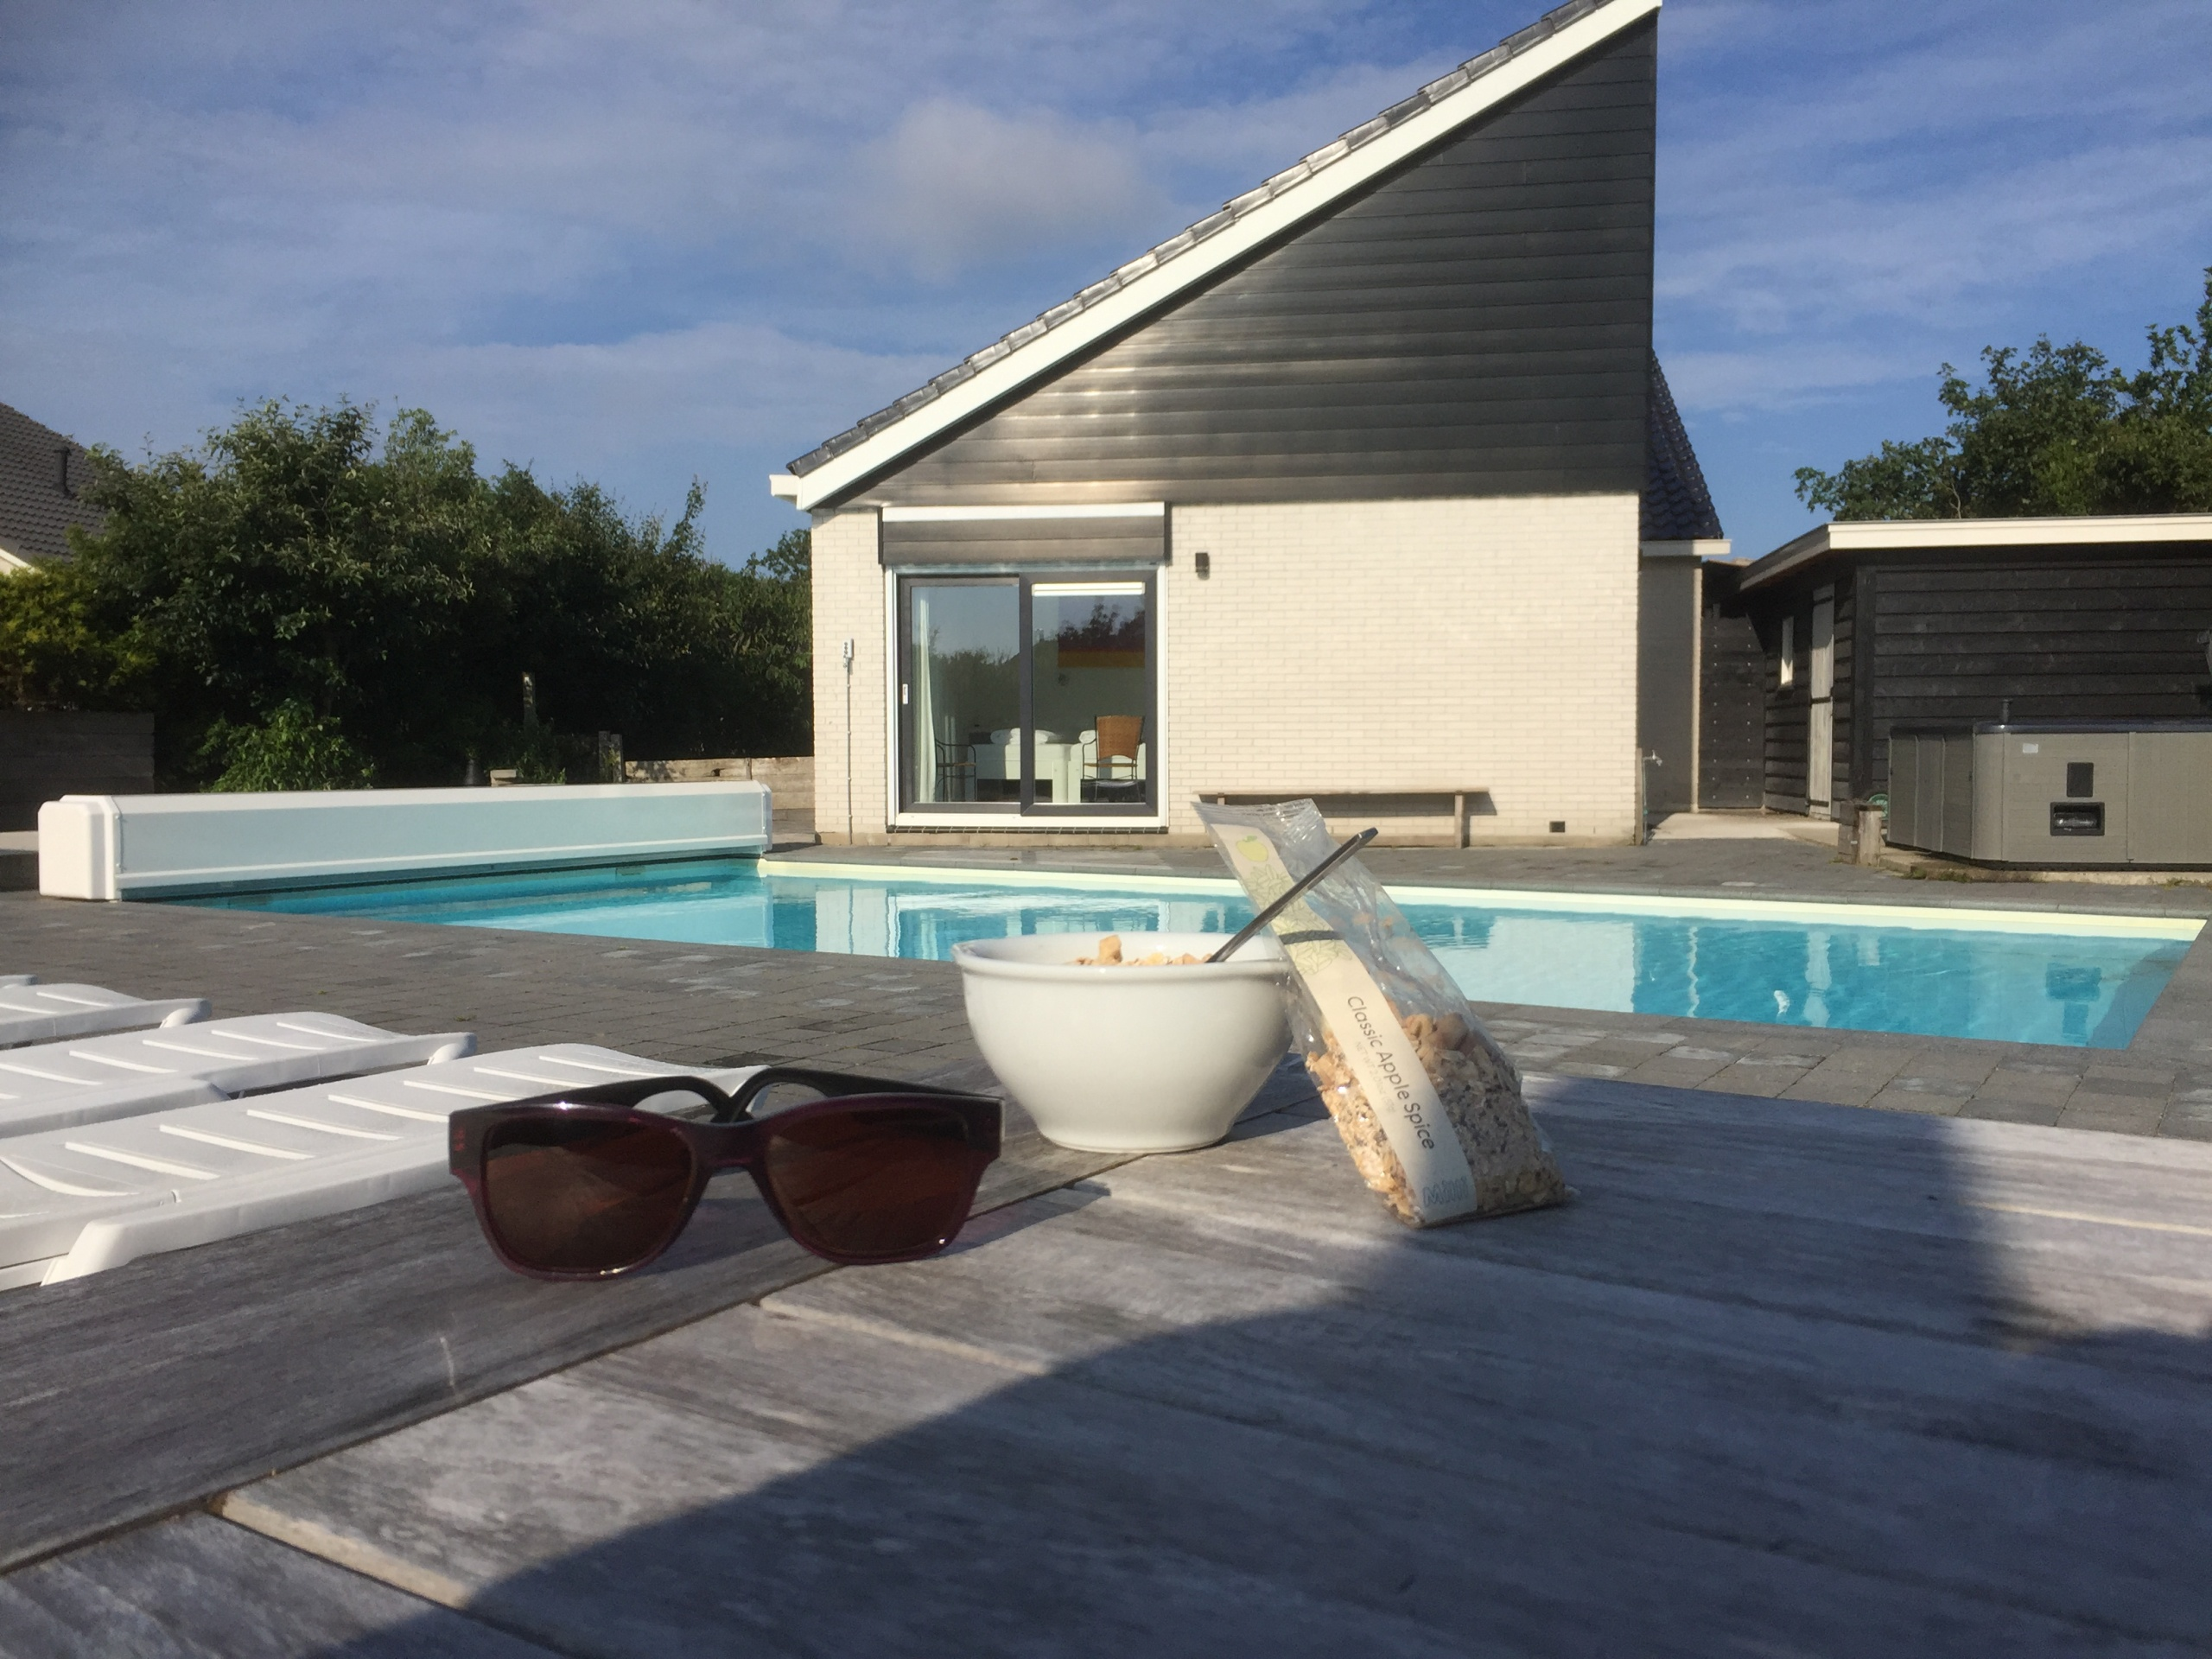 Luxury wellness holiday home with swimming pool and jacuzzi near the sea in De Koog